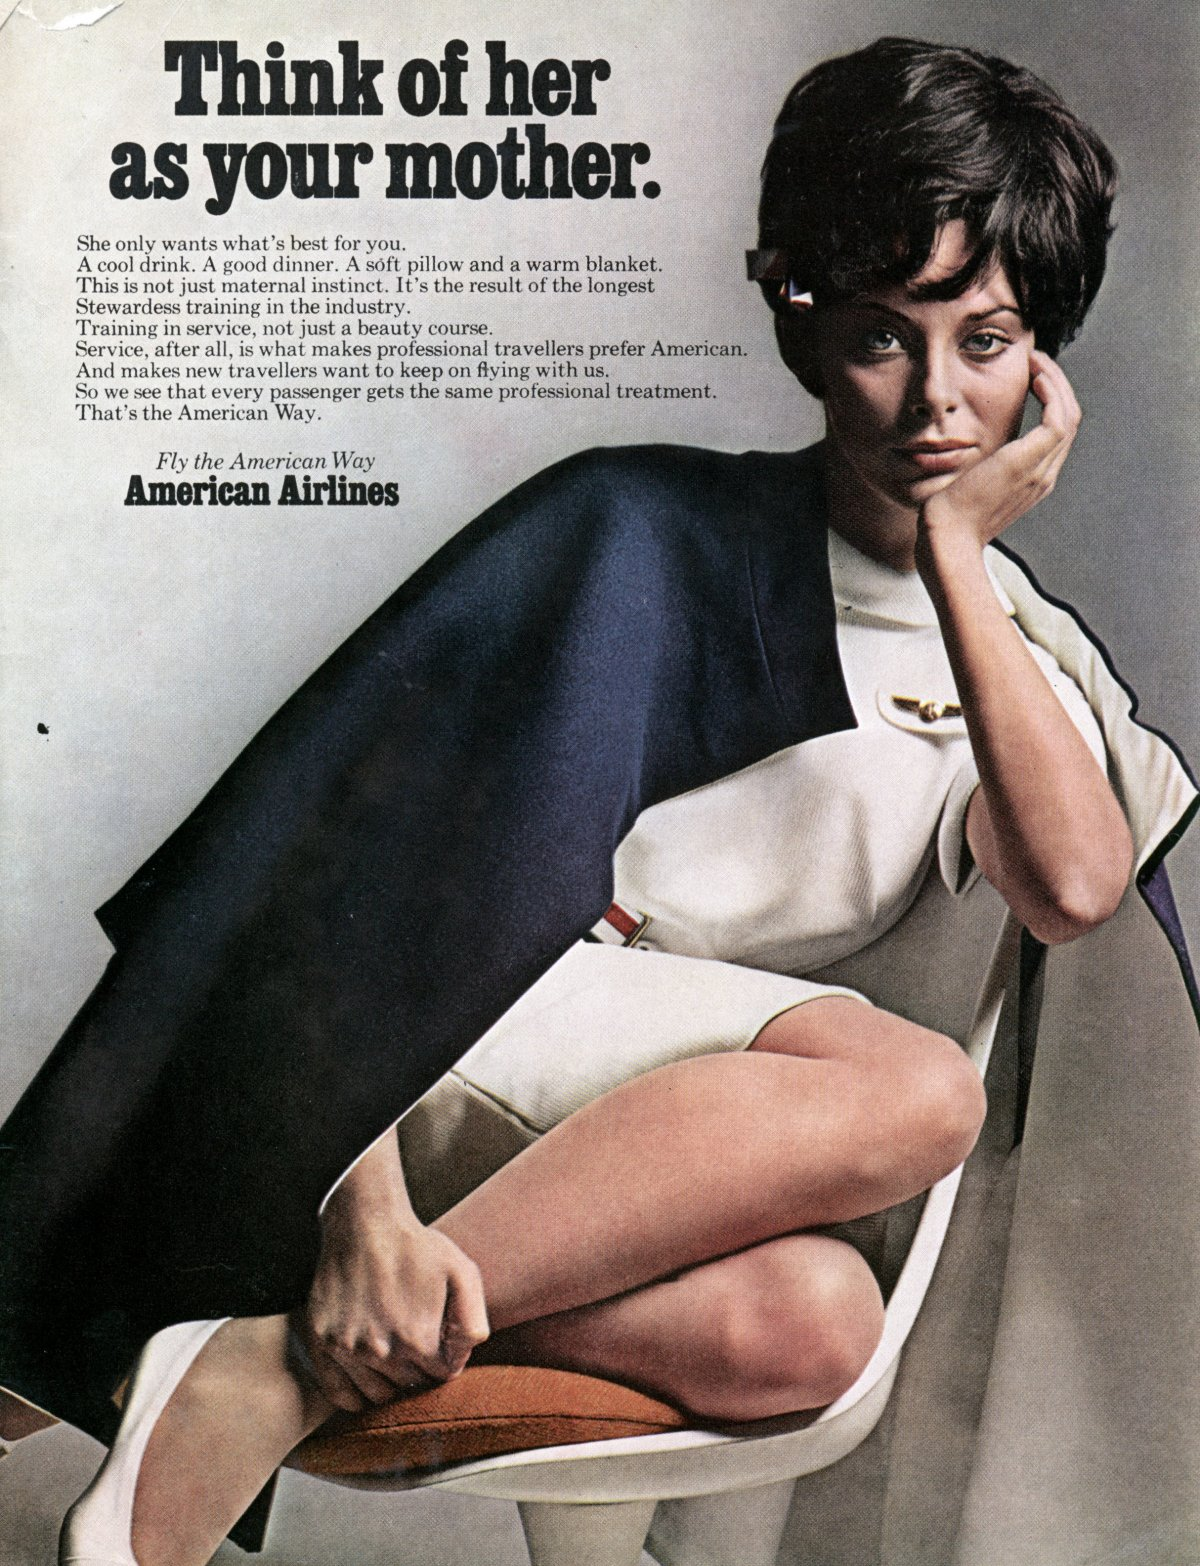 1968 (American Airlines)